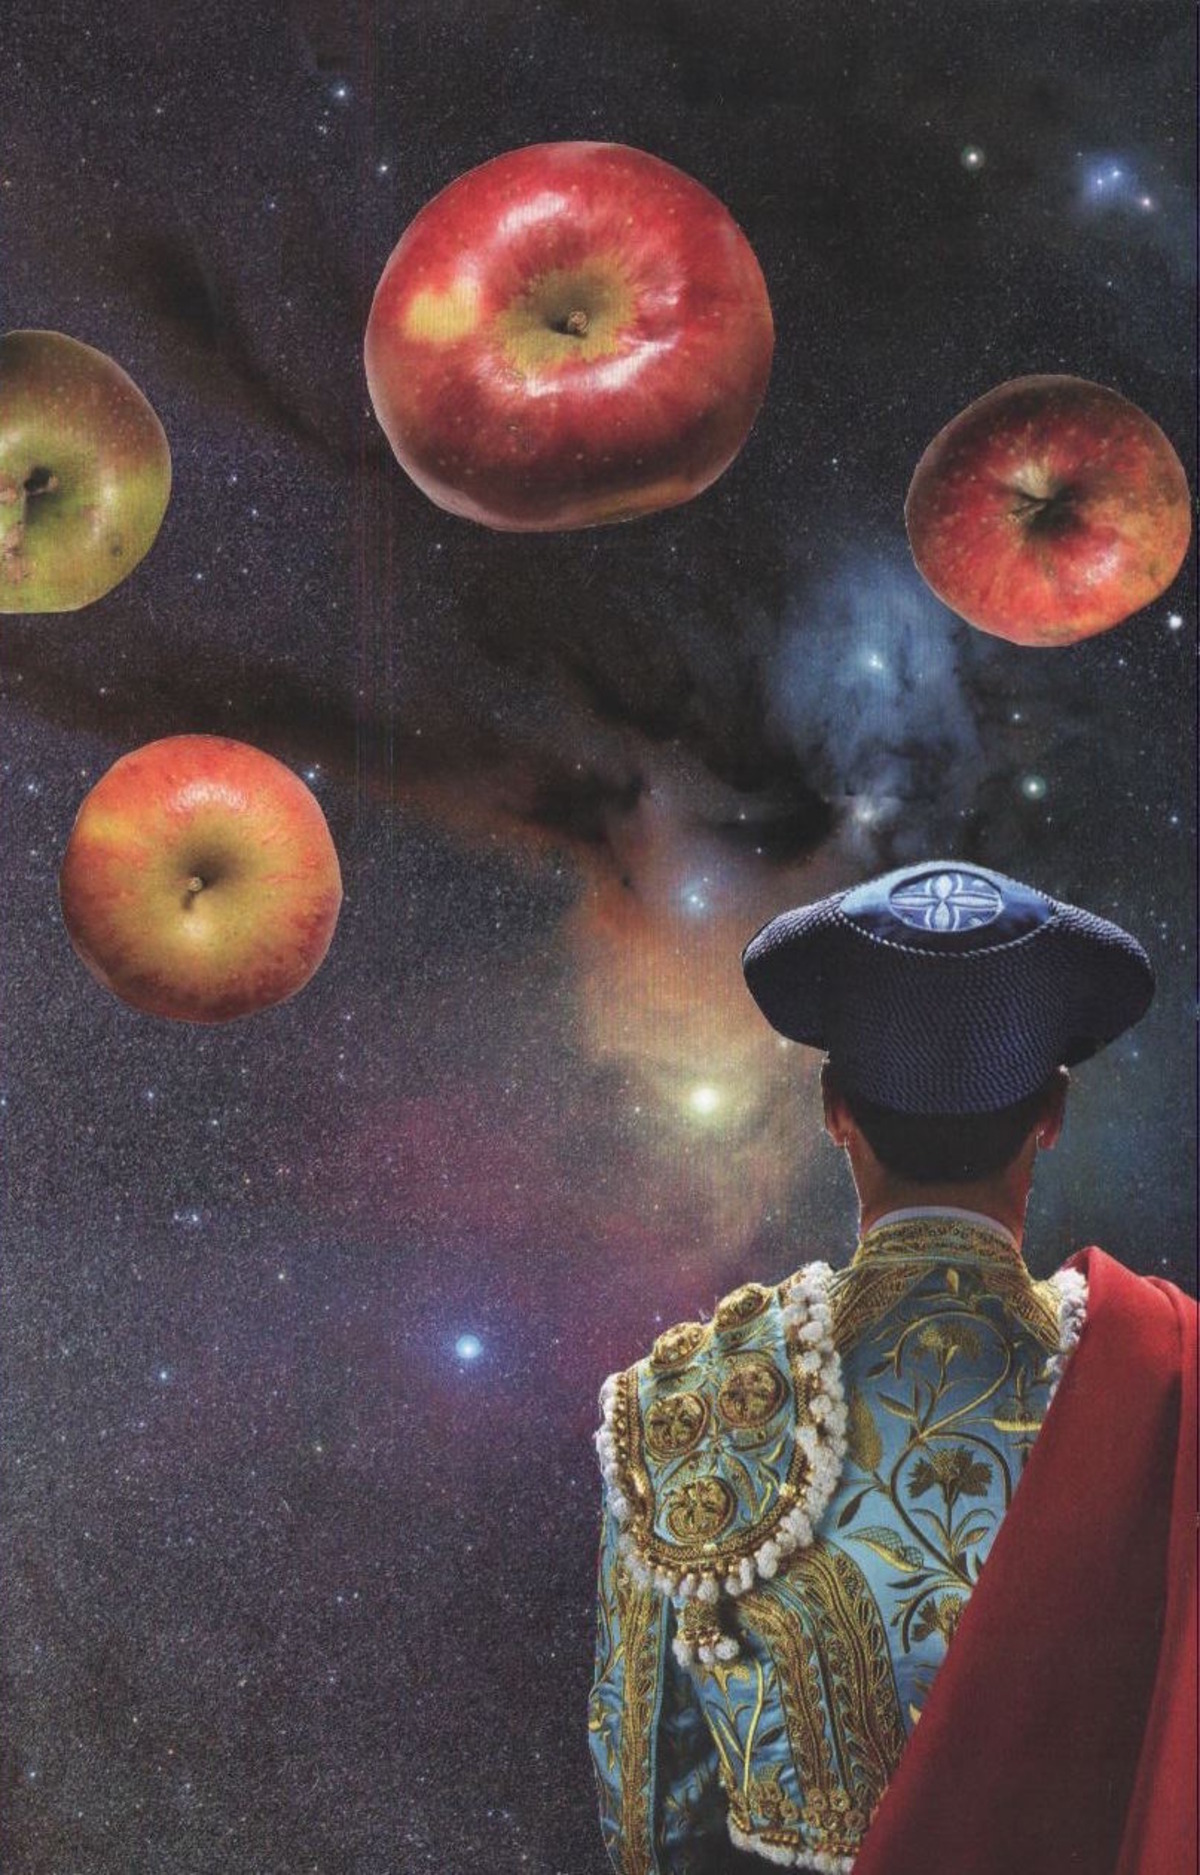 collage-mary-space-apples-2015.jpg